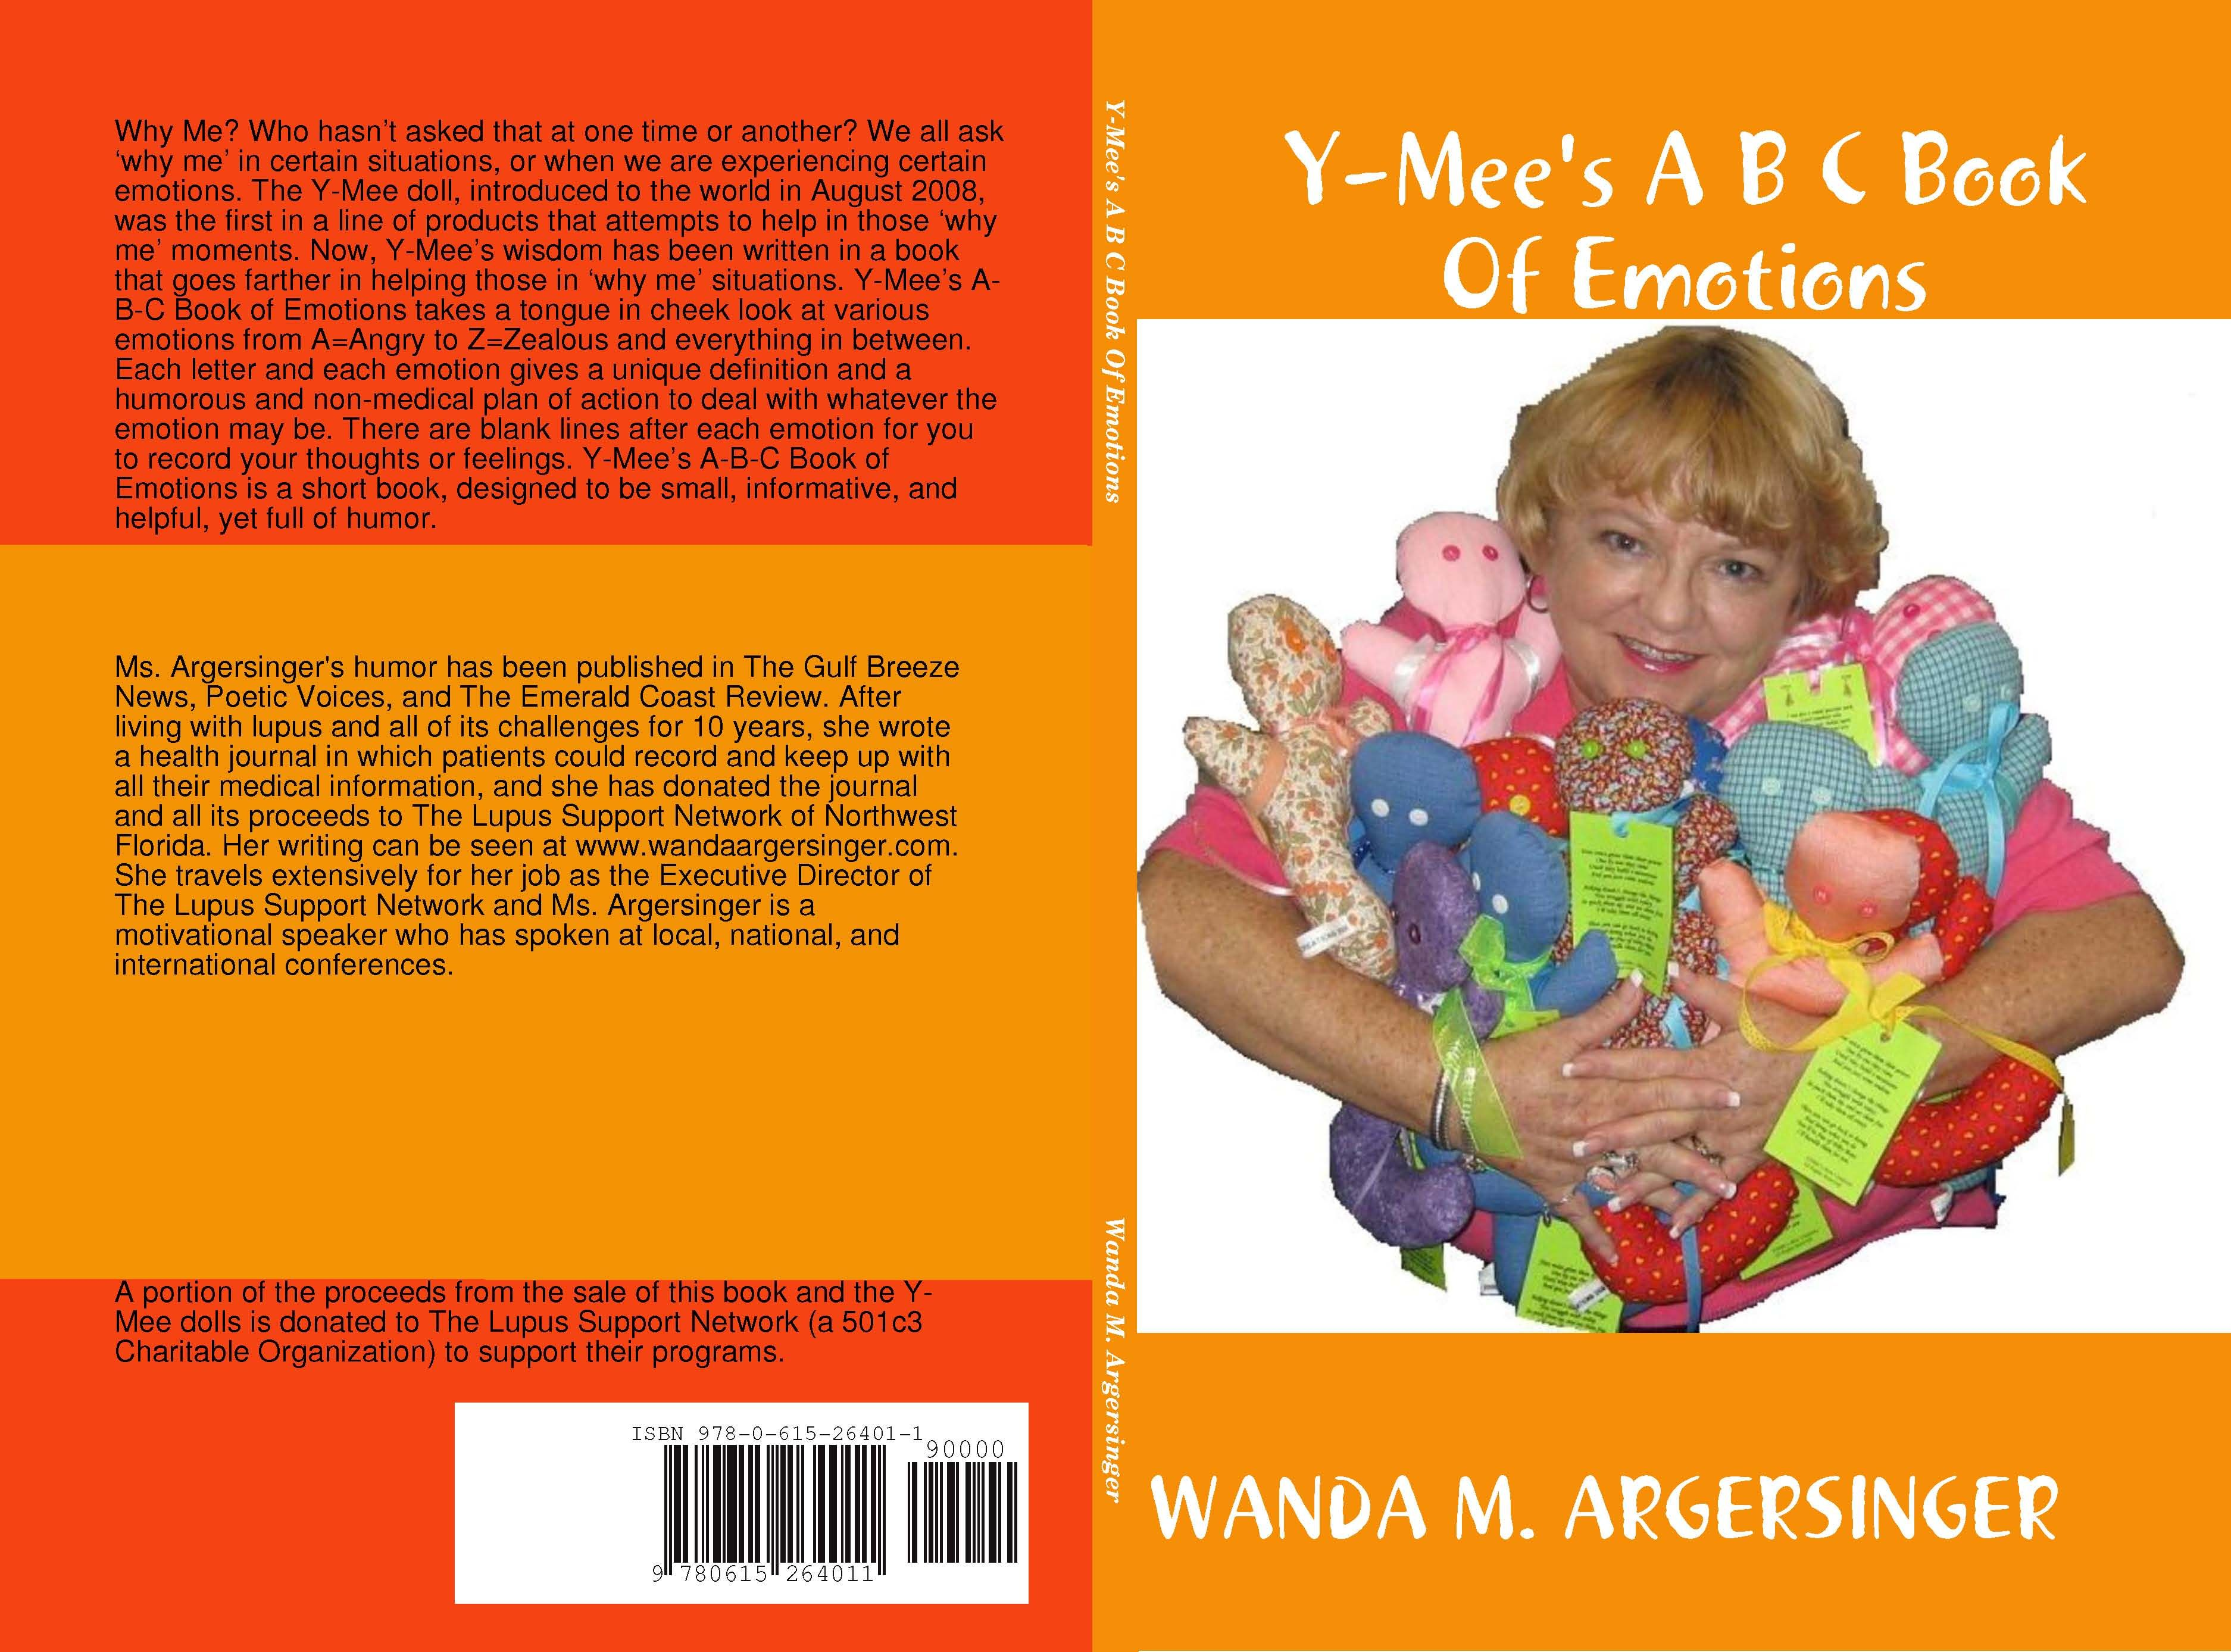 Y-mee is a doll designed to help anyone who finds themself asking the questions Why Me? In this book he tackles emotions by defining them and helping you deal with them with his in your face advice.